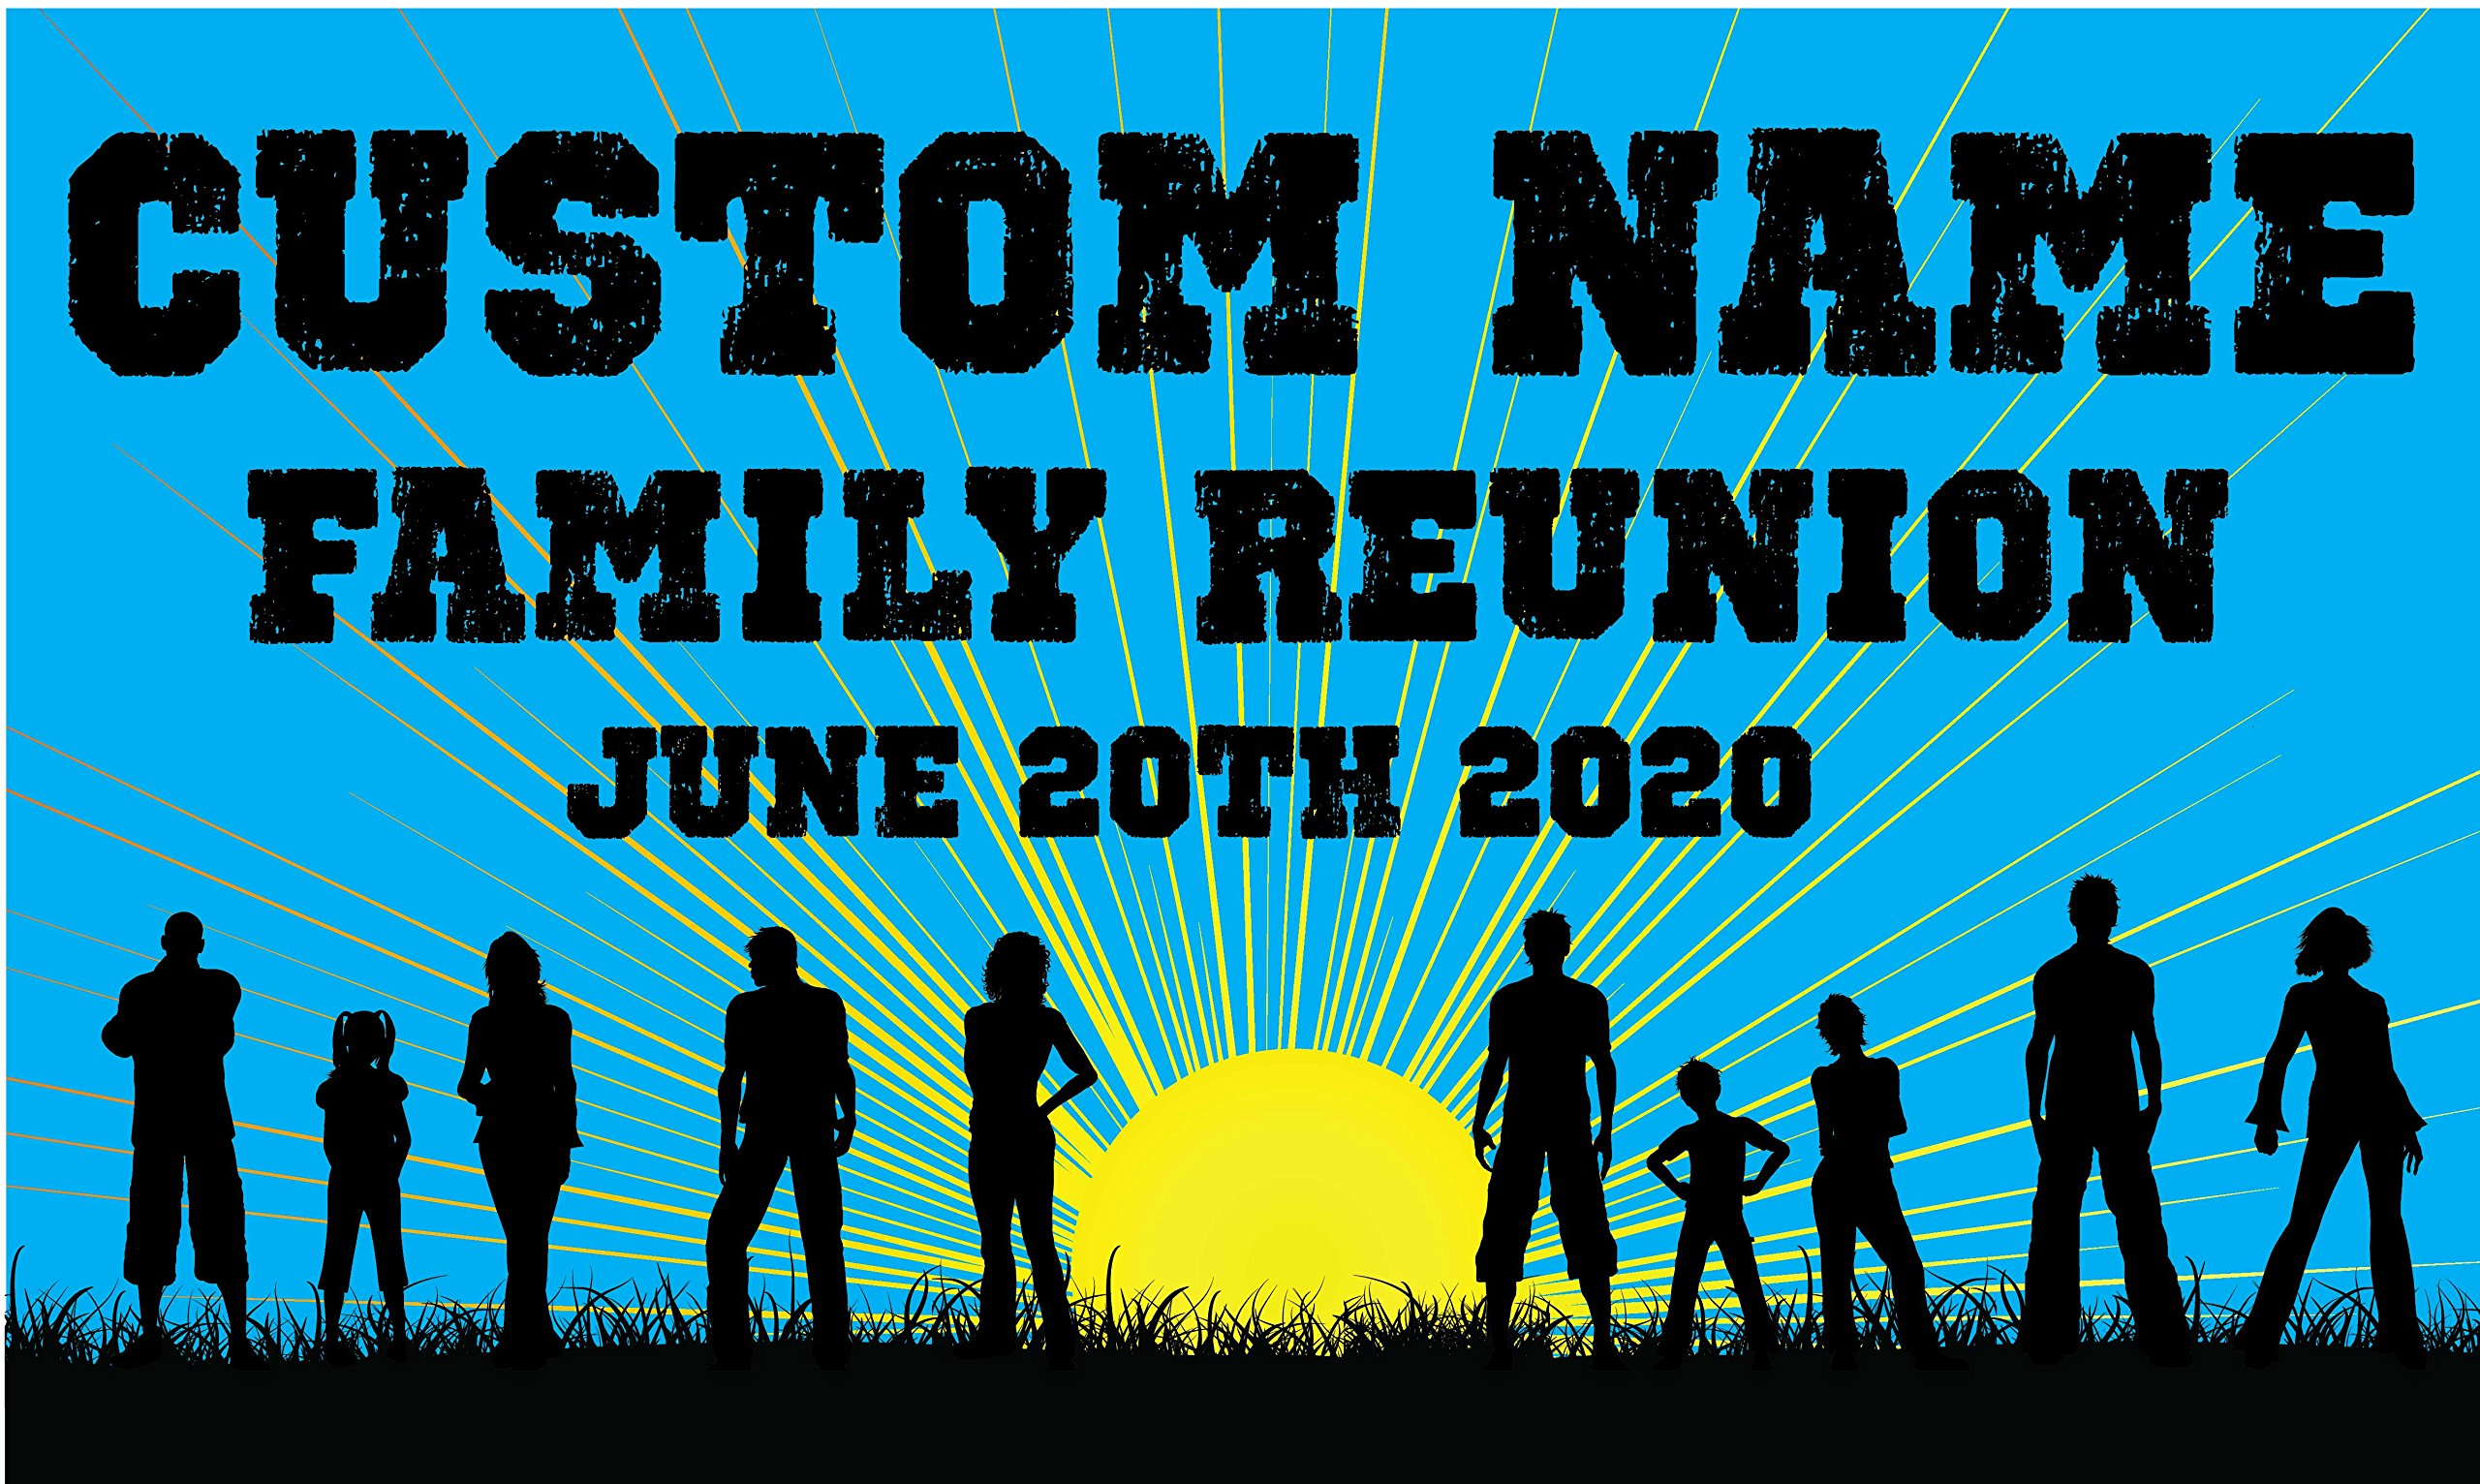 Family Reunion Custom Printed Banner - Blue Rays (10' x 5') by Reliable Banner Sign Supply & Printing